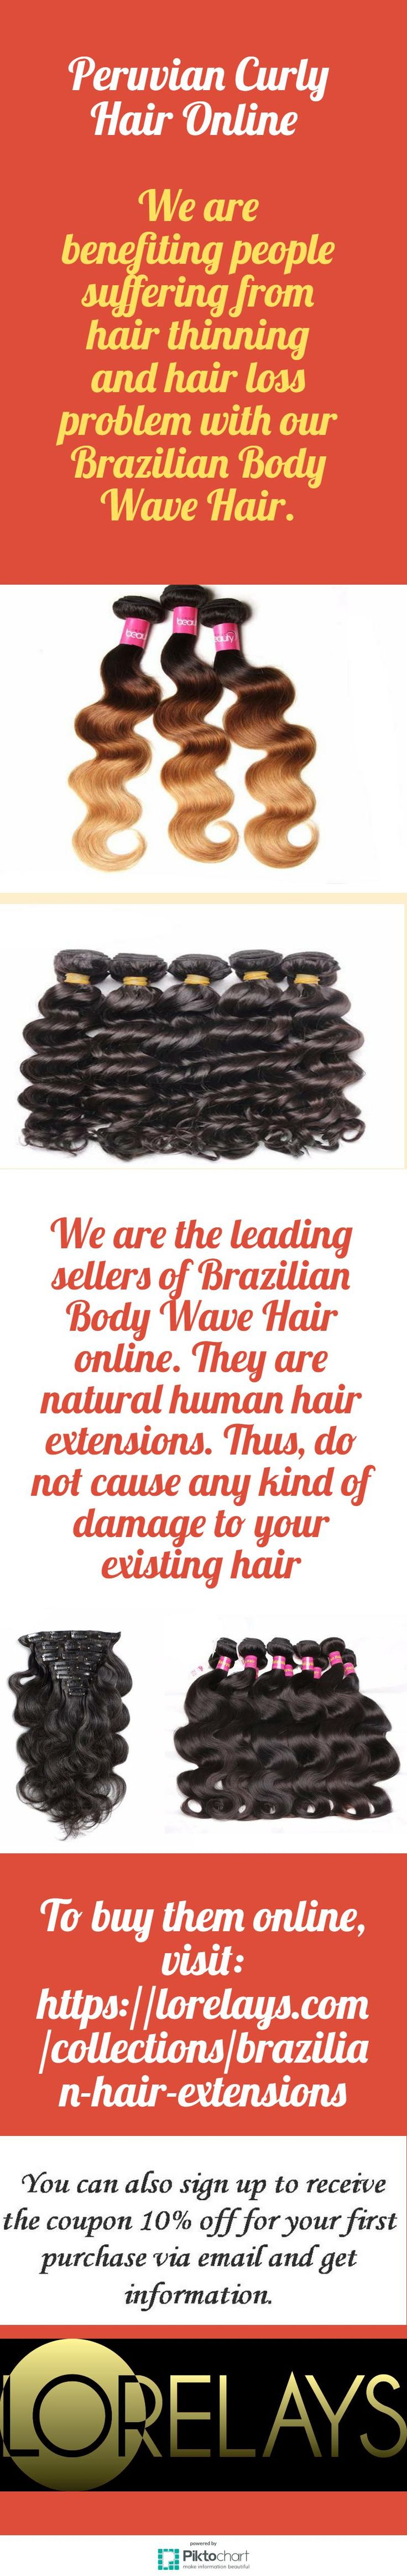 Are you looking for a good quality Curly Hair extensions? Visit lorelays today. Our Peruvian Curly Hair extensions are easy to use and are perfect for beginners. See more: https://lorelays.com/collections/wholesale